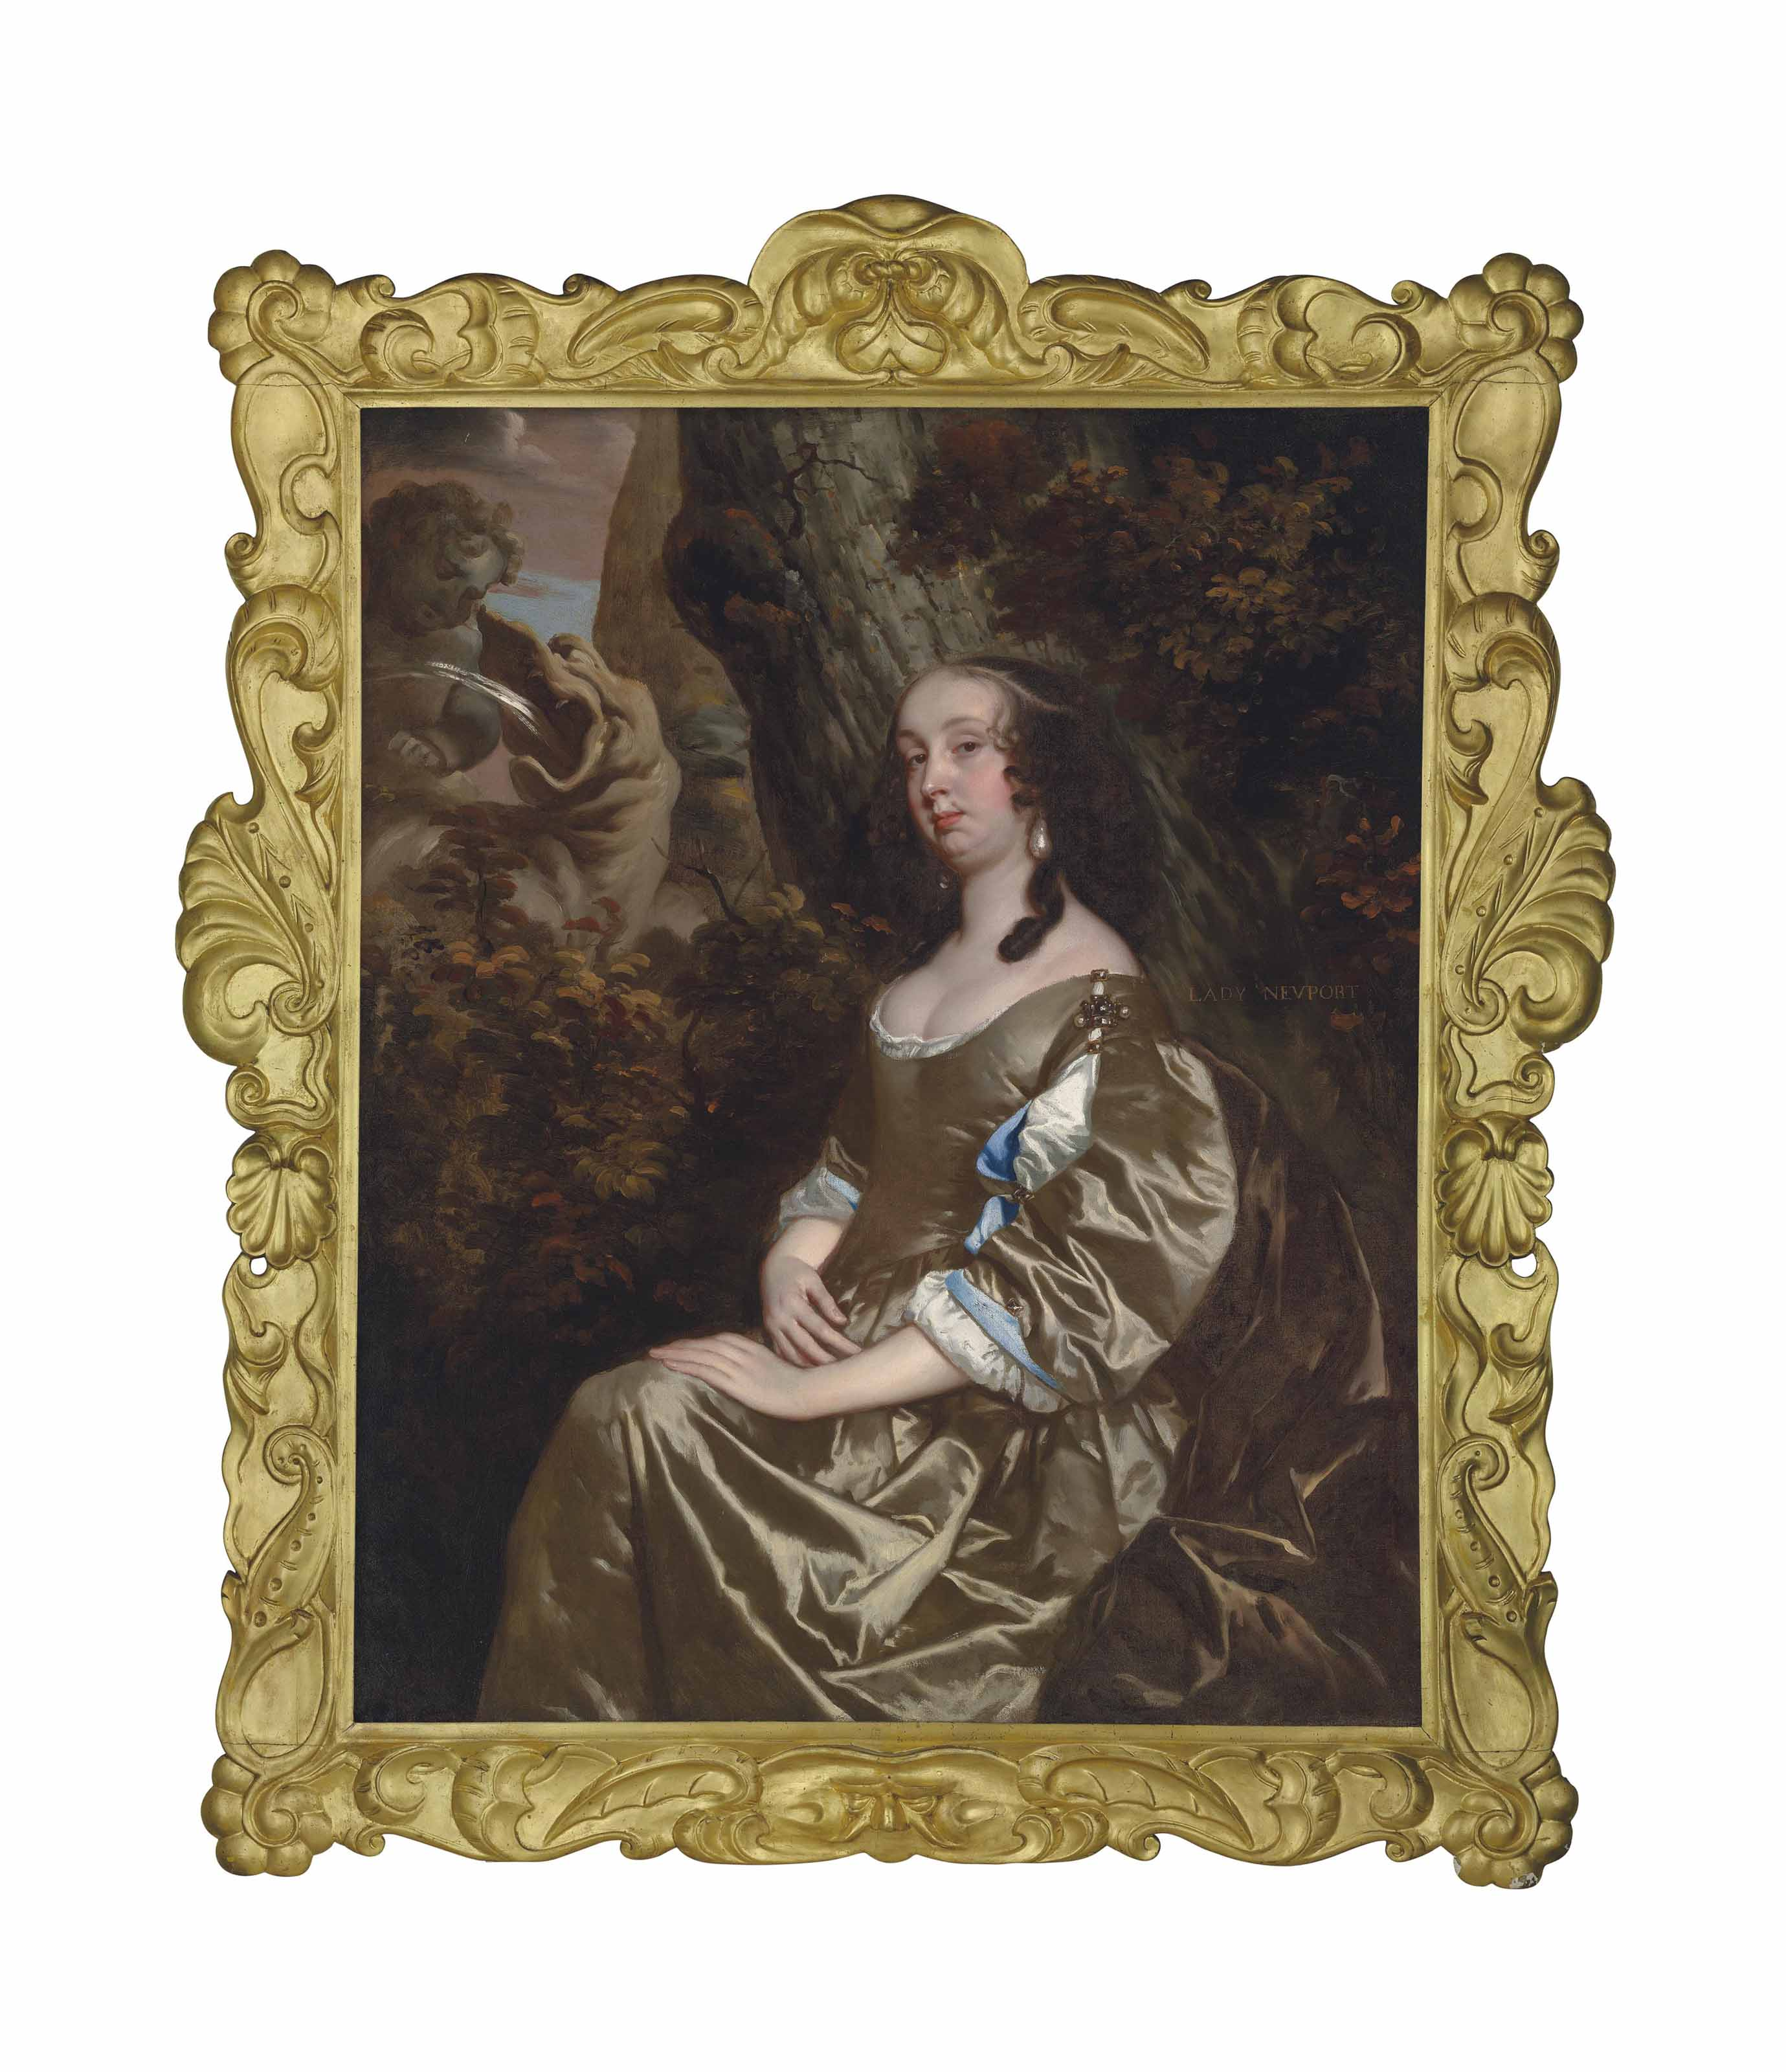 Portrait of Diana Russell, Lady Newport (1624-1694), three-quarter-length, in an oyster satin dress embellished with jewels, in a wooded landscape